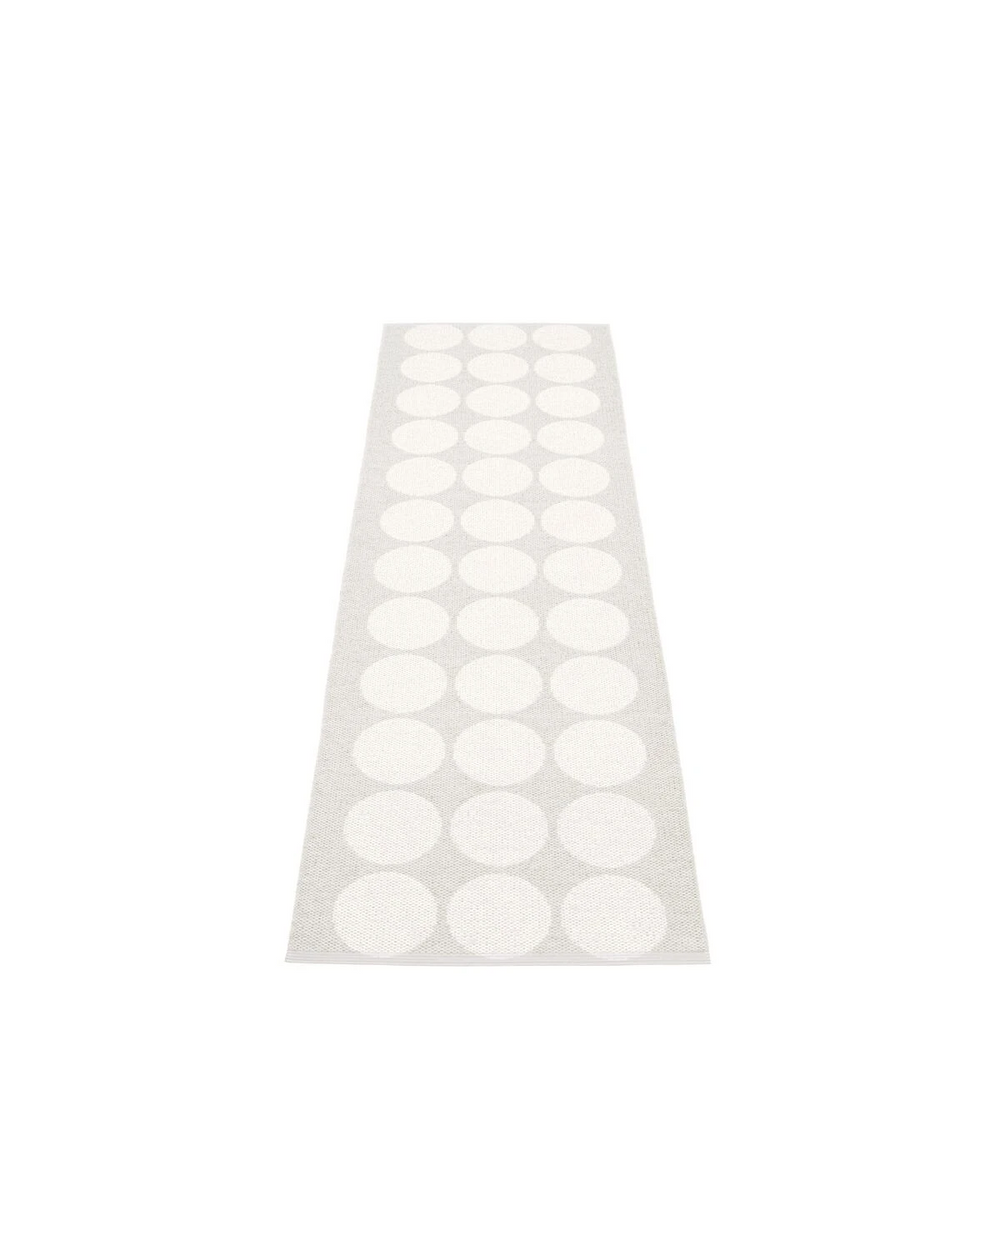 Rug Hugo White Metallic by Pappelina